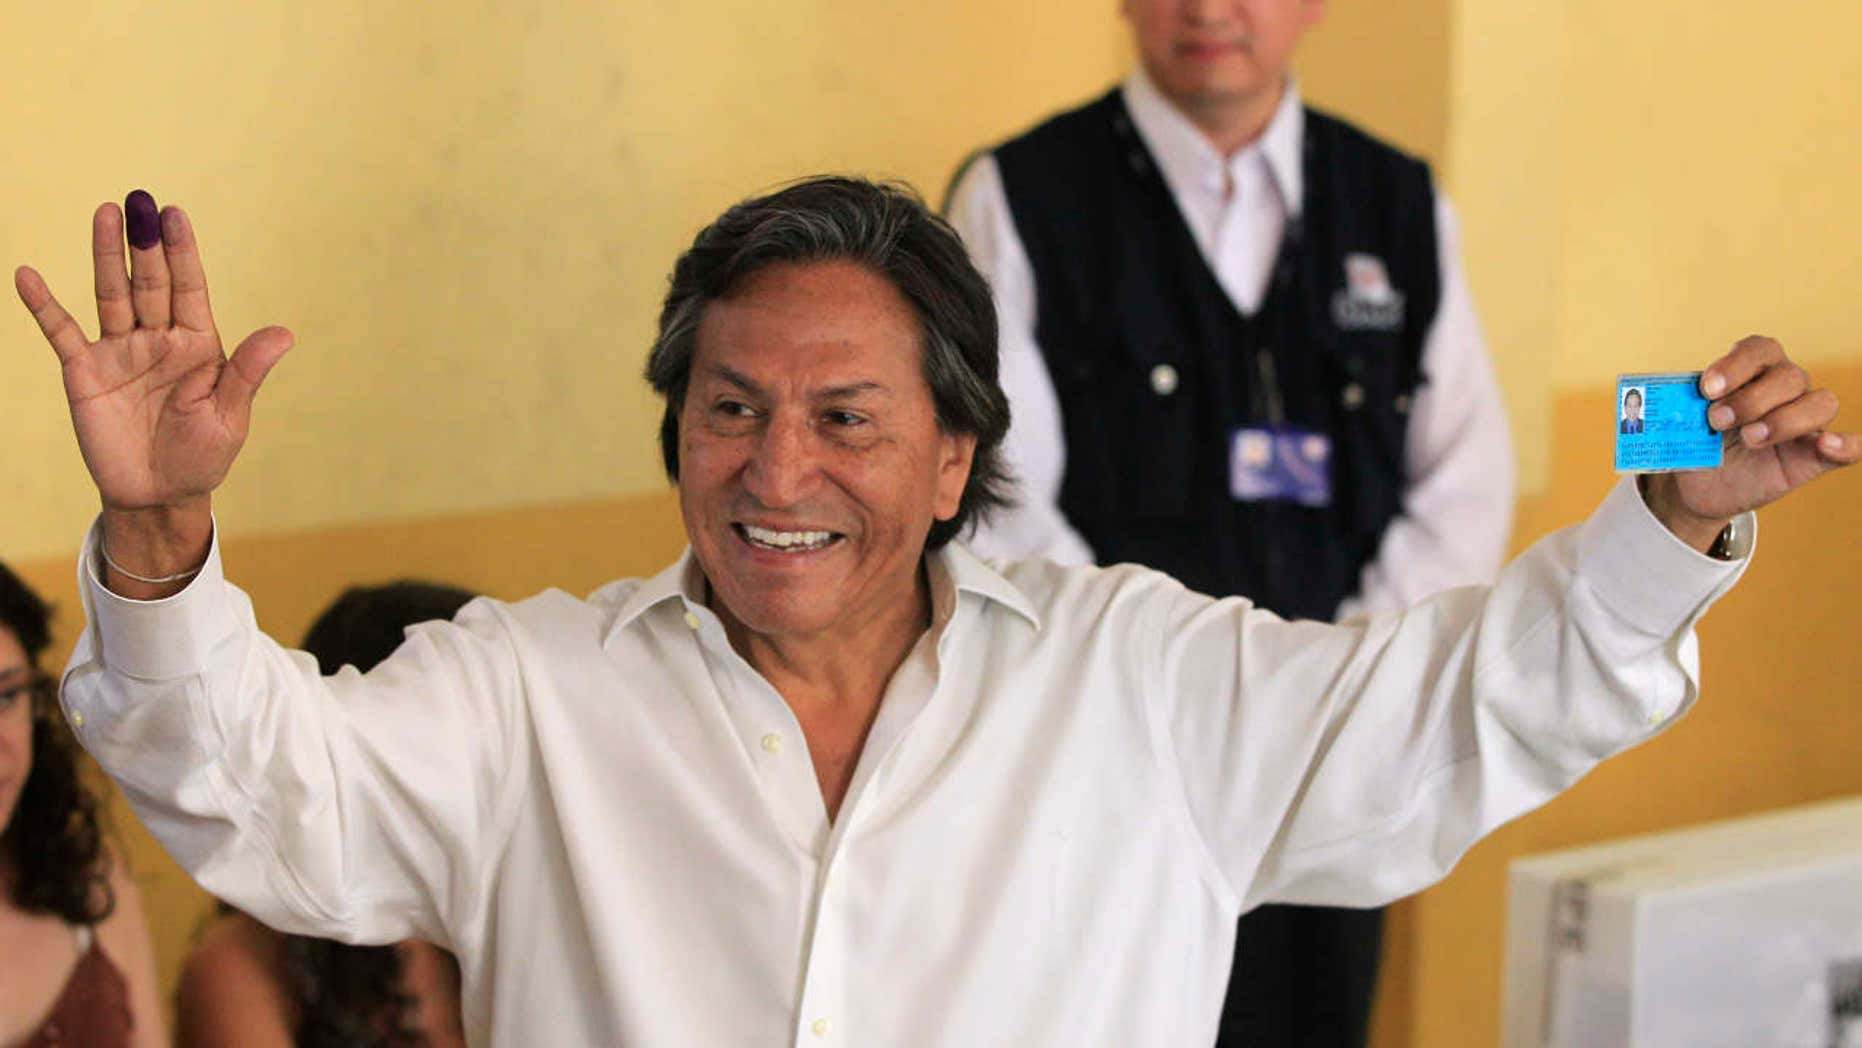 FILE -- In this April 10, 2011 file photo, then presidential candidate Alejandro Toledo holds up his ink-stained finger and identification card after voting in the general elections, in Lima, Peru.